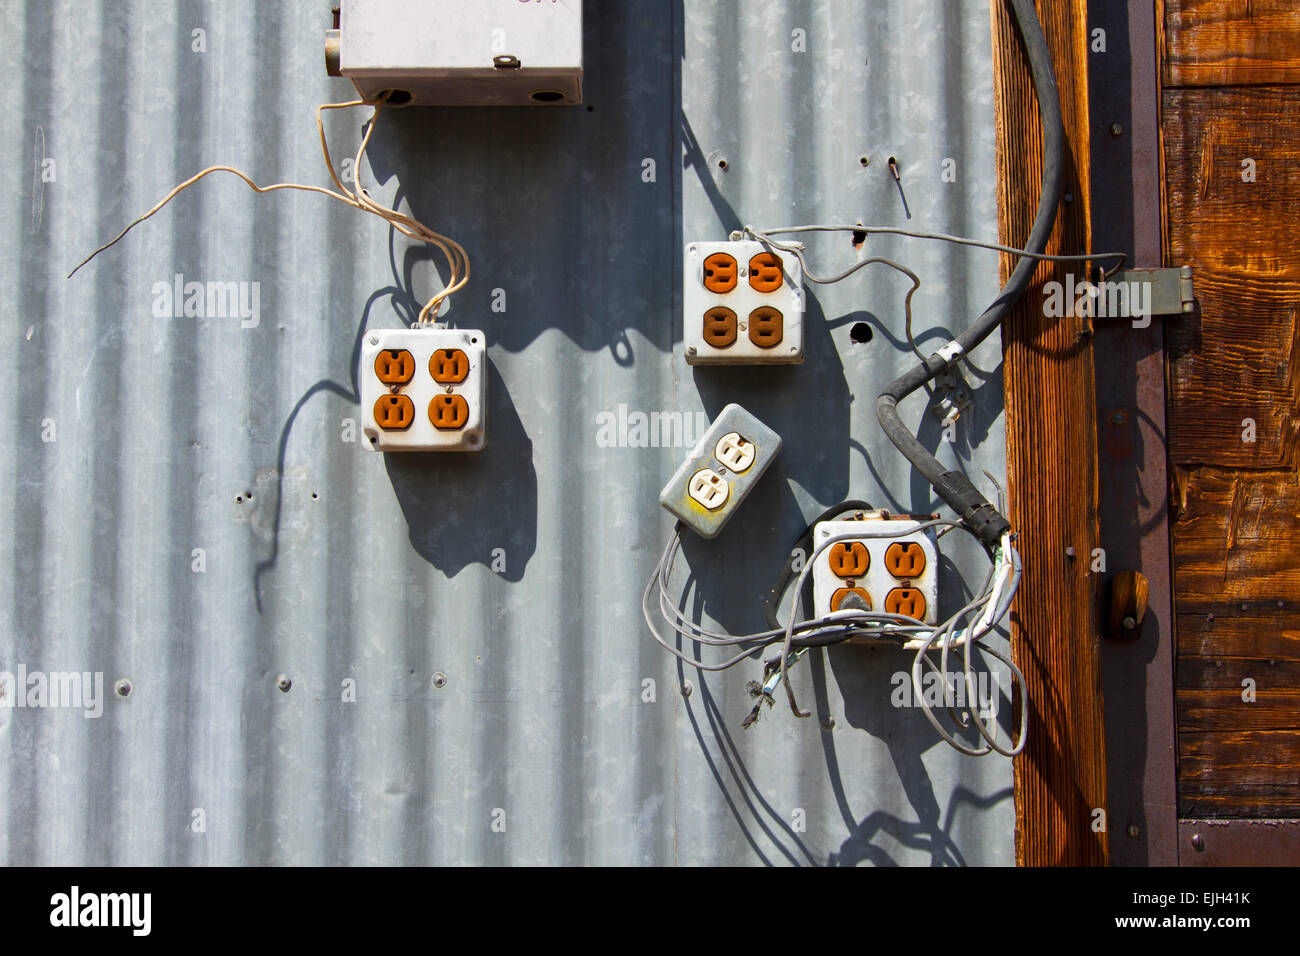 Faulty Wiring Stock Photos Images Alamy Diy Electrical Shed Old Electric And Equipment On Wall Image